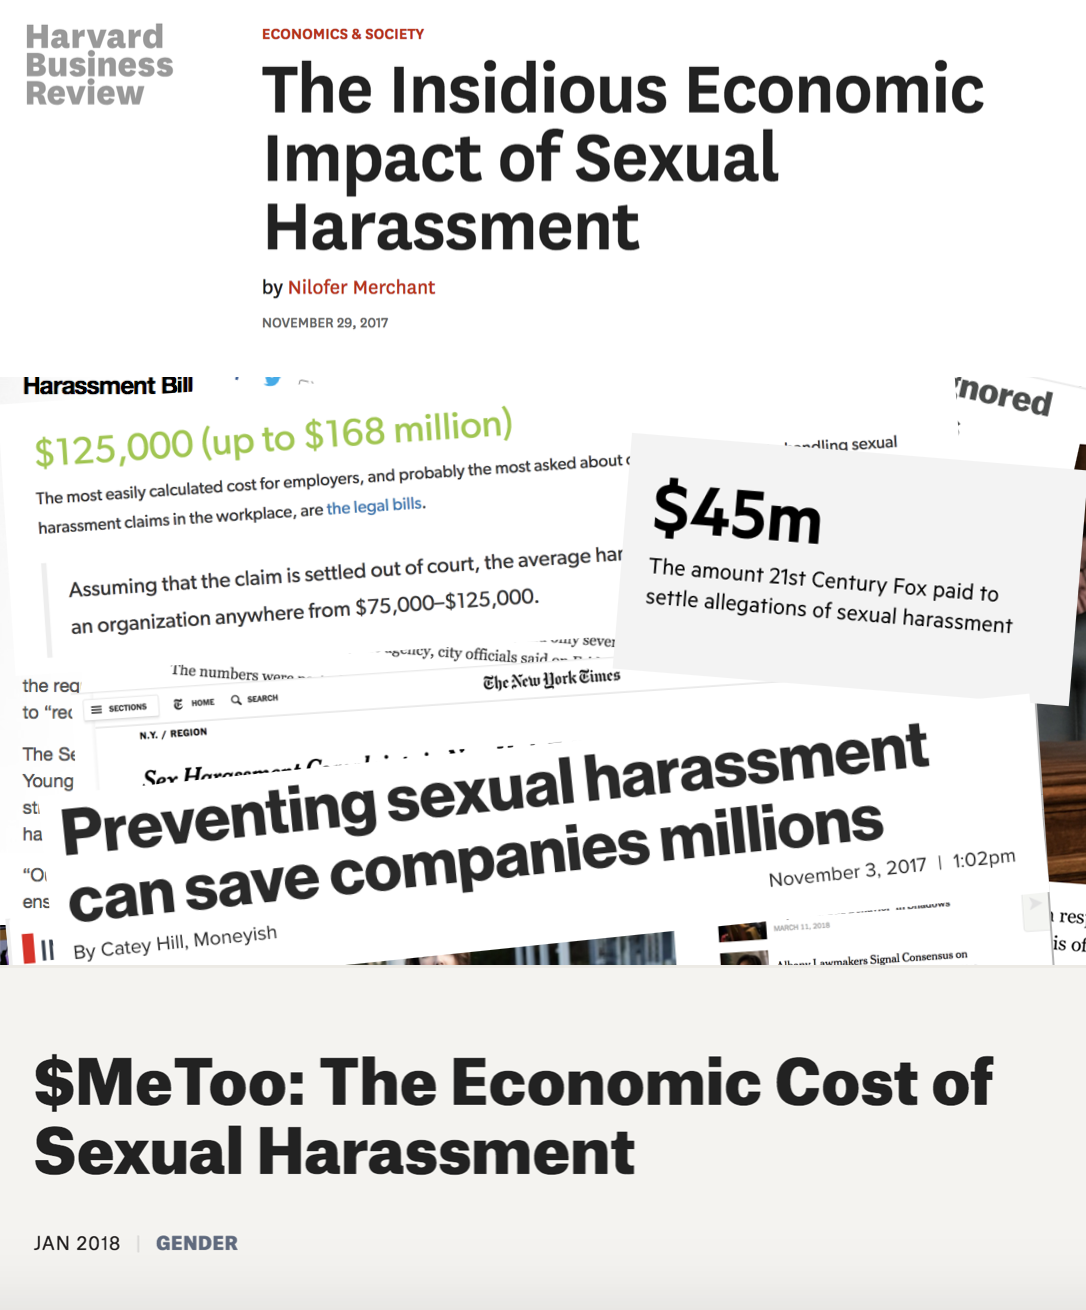 Reduce litigation and save money - Companies spend a minimum of $500k for each harassment case that goes unresolved and is taken to court.